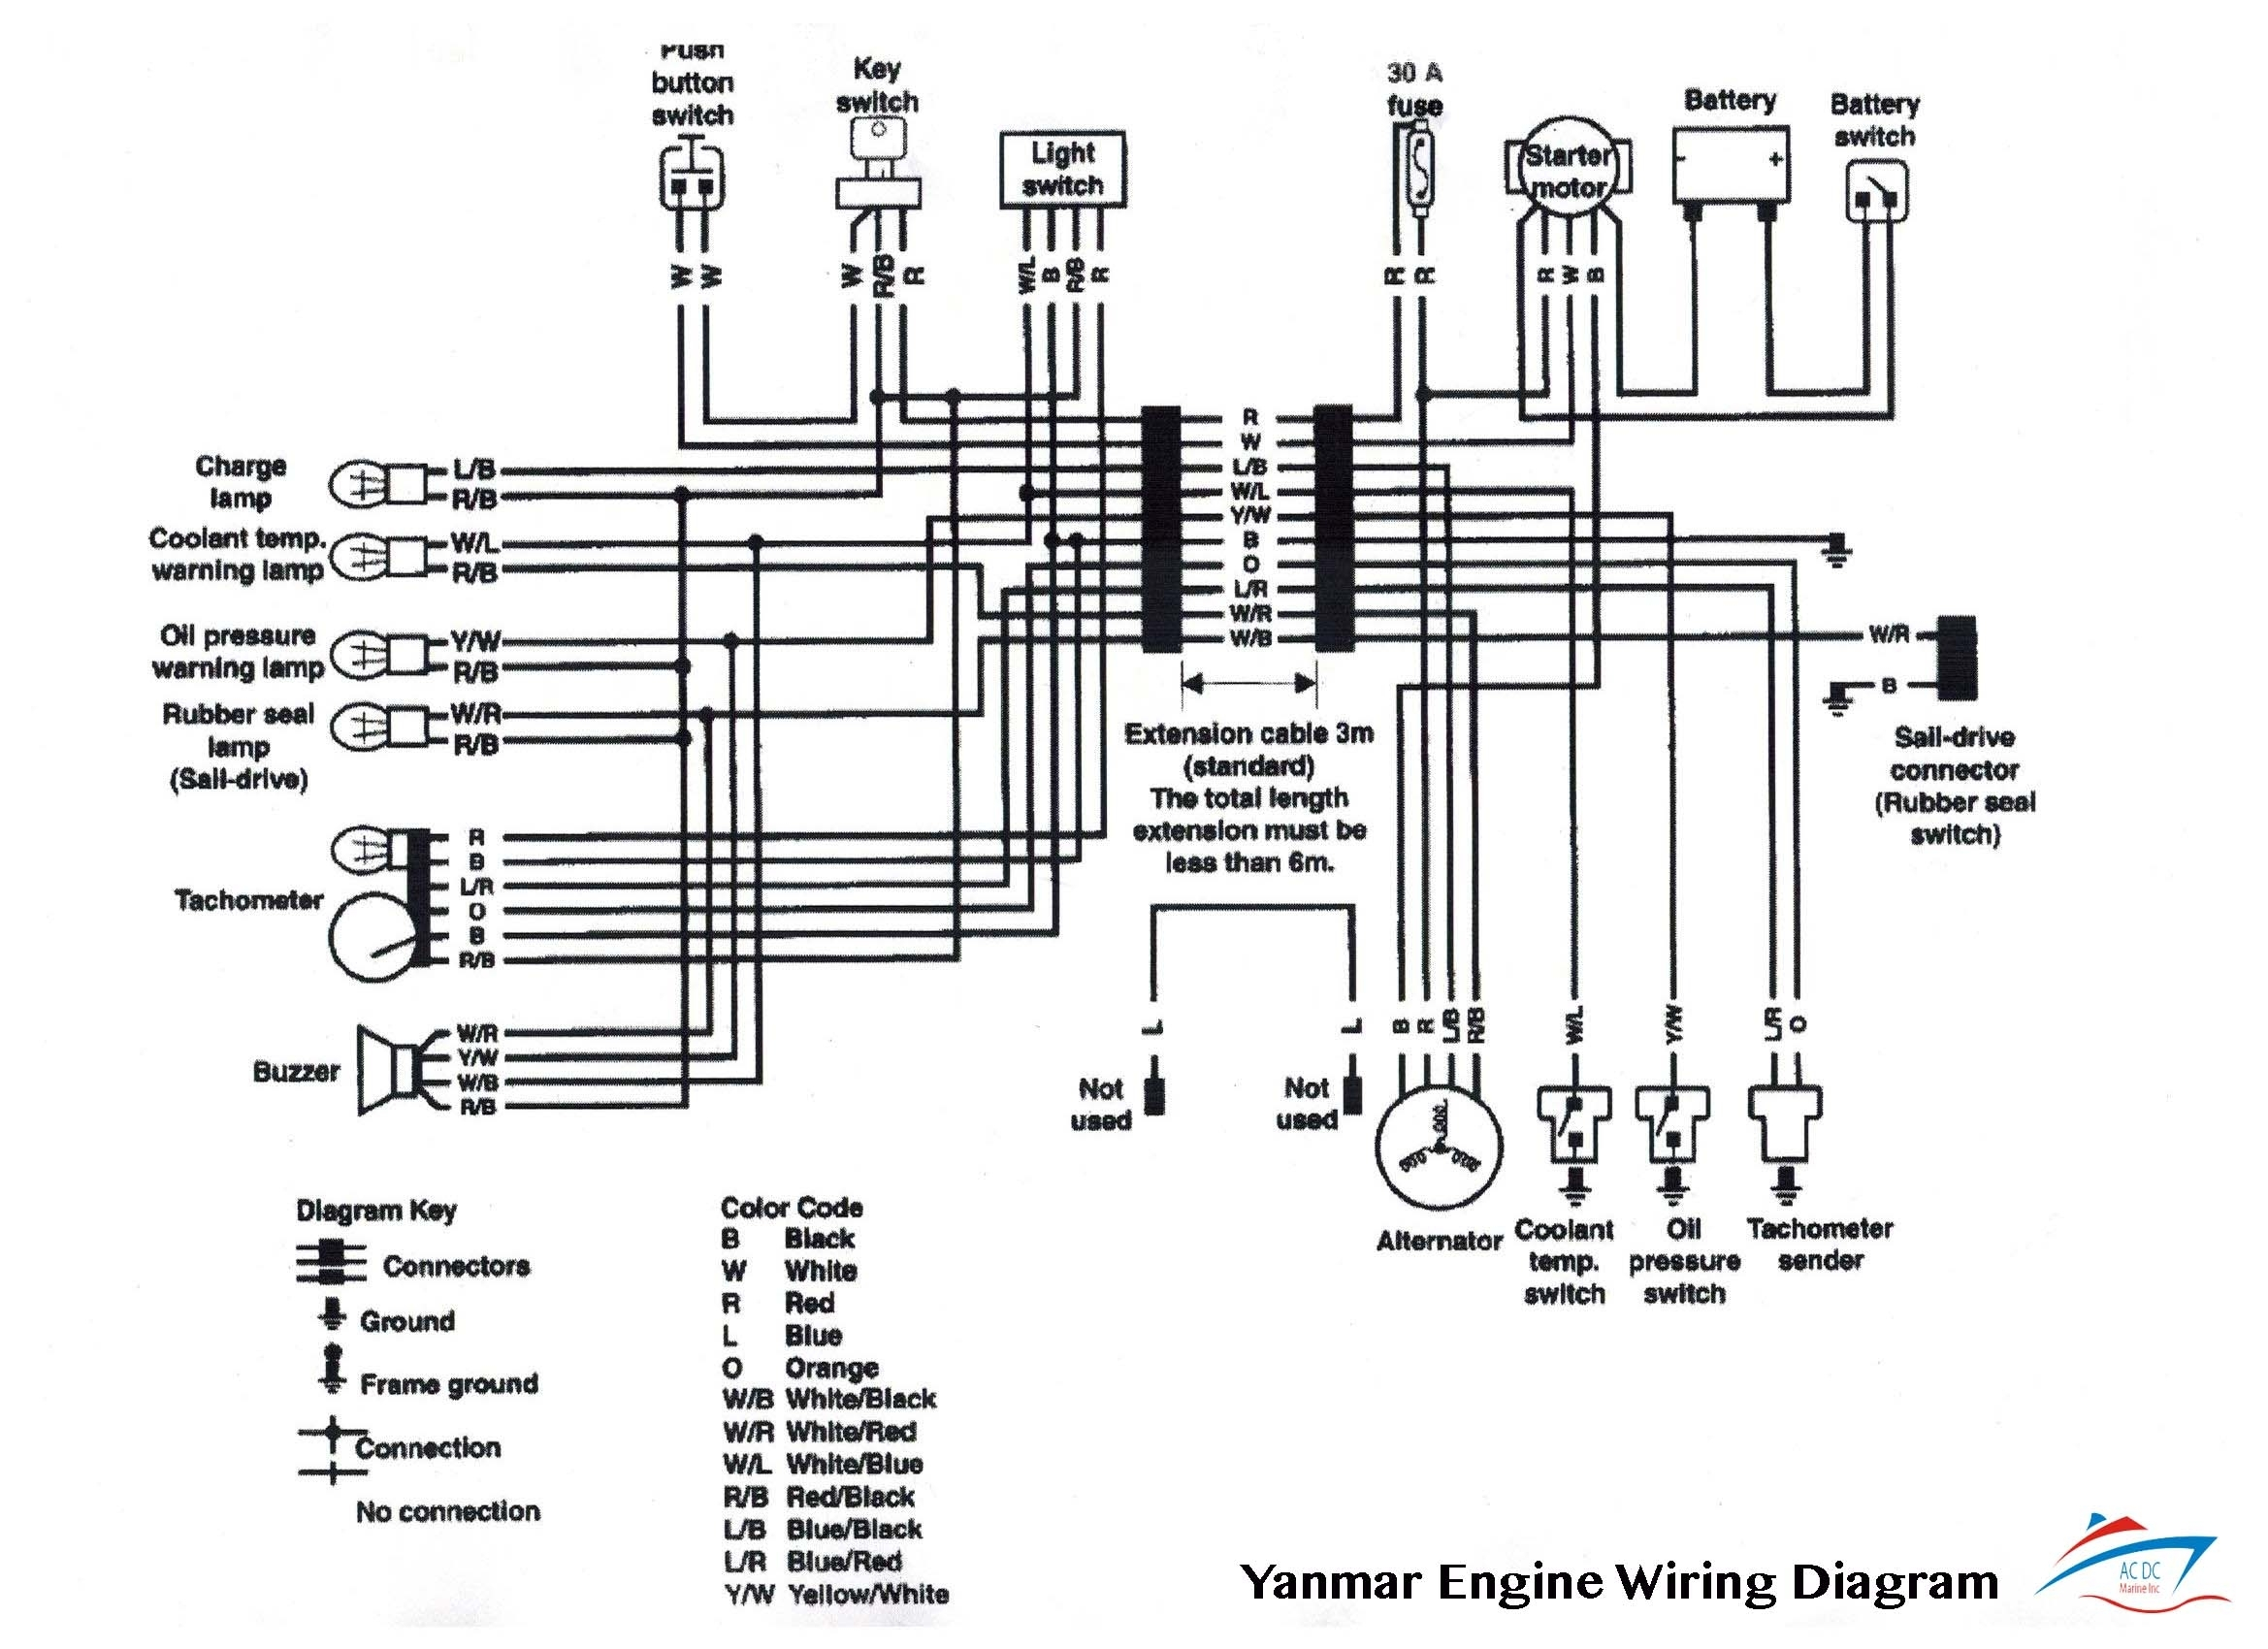 Marine Instrument Panel Wiring Diagram - Auto Electrical ... on